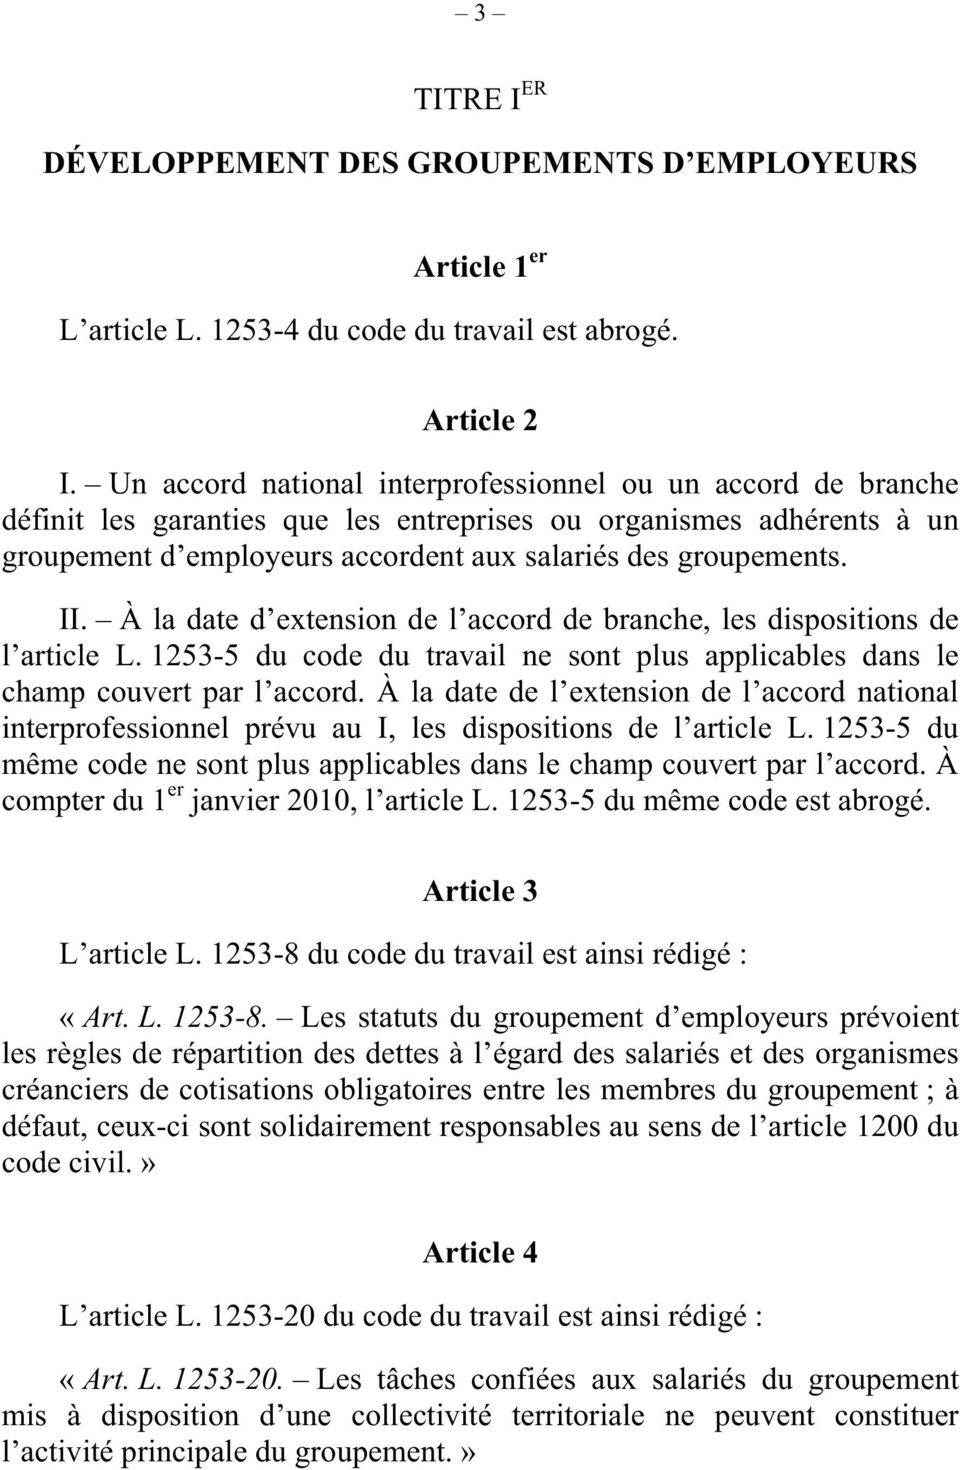 À la date d extension de l accord de branche, les dispositions de l article L. 1253-5 du code du travail ne sont plus applicables dans le champ couvert par l accord.